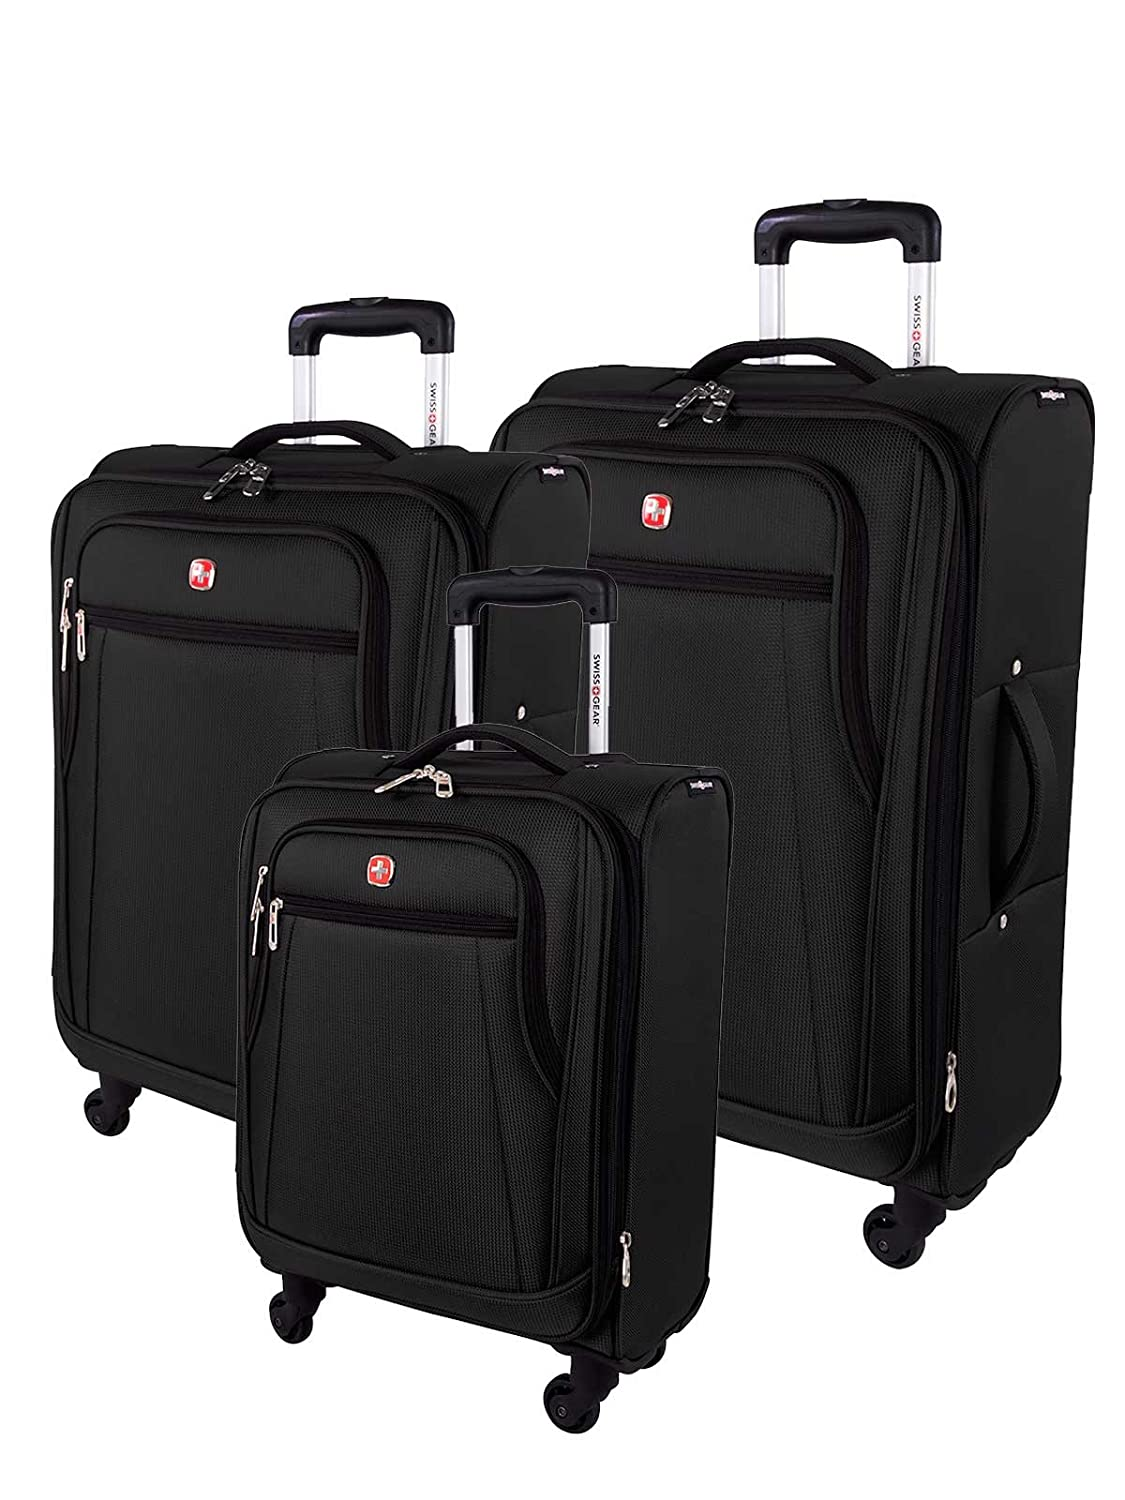 SwissGear Cross Country 3 Piece Spinner Luggage Set, Black Holiday Luggage SW49183009